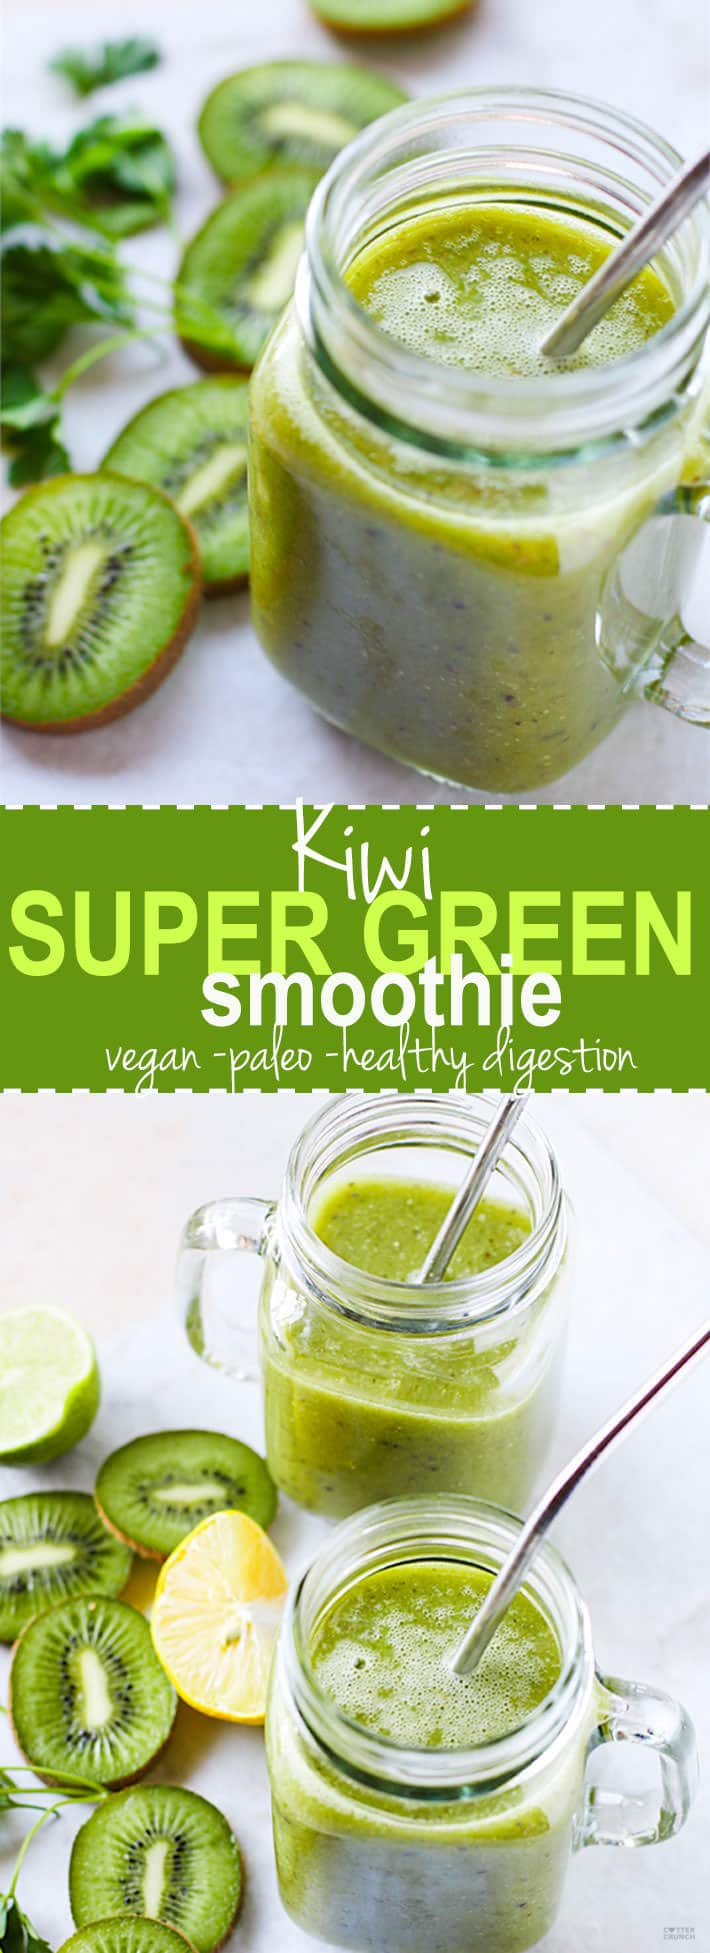 Give your digestion a little TLC with this Kiwi Super Green Smoothie! Super ingredients that are all healthy and nourishing. A green smoothie that does a body good. Simply delicious and refreshing! Paleo and vegan friendly! @cottercrunch